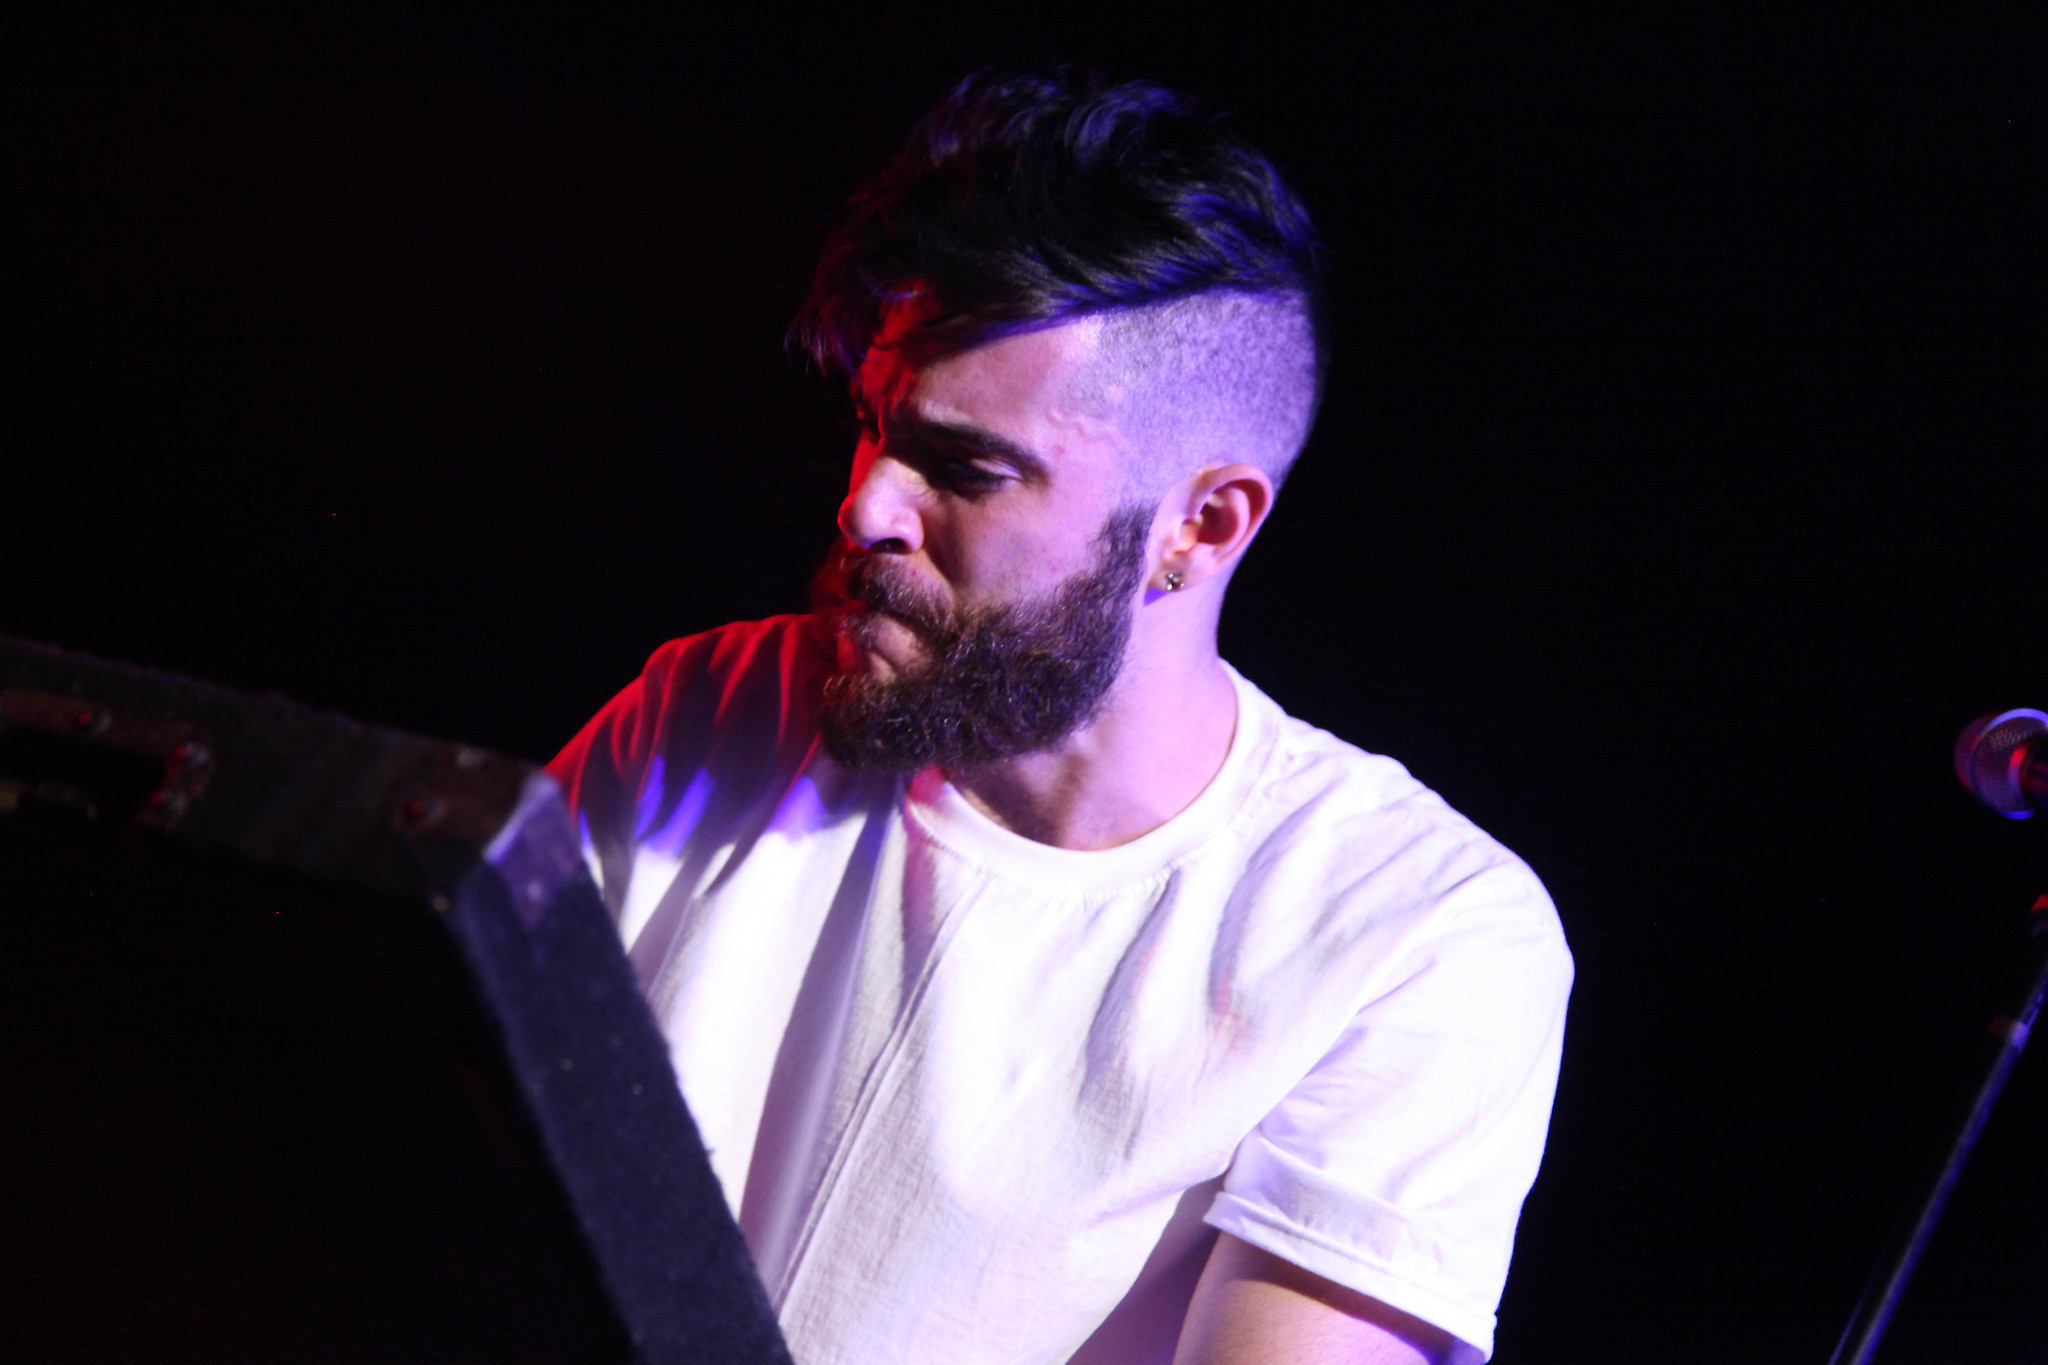 Jon Bellion Wallpapers Images Photos Pictures Backgrounds Best Tobey Maguire Movies